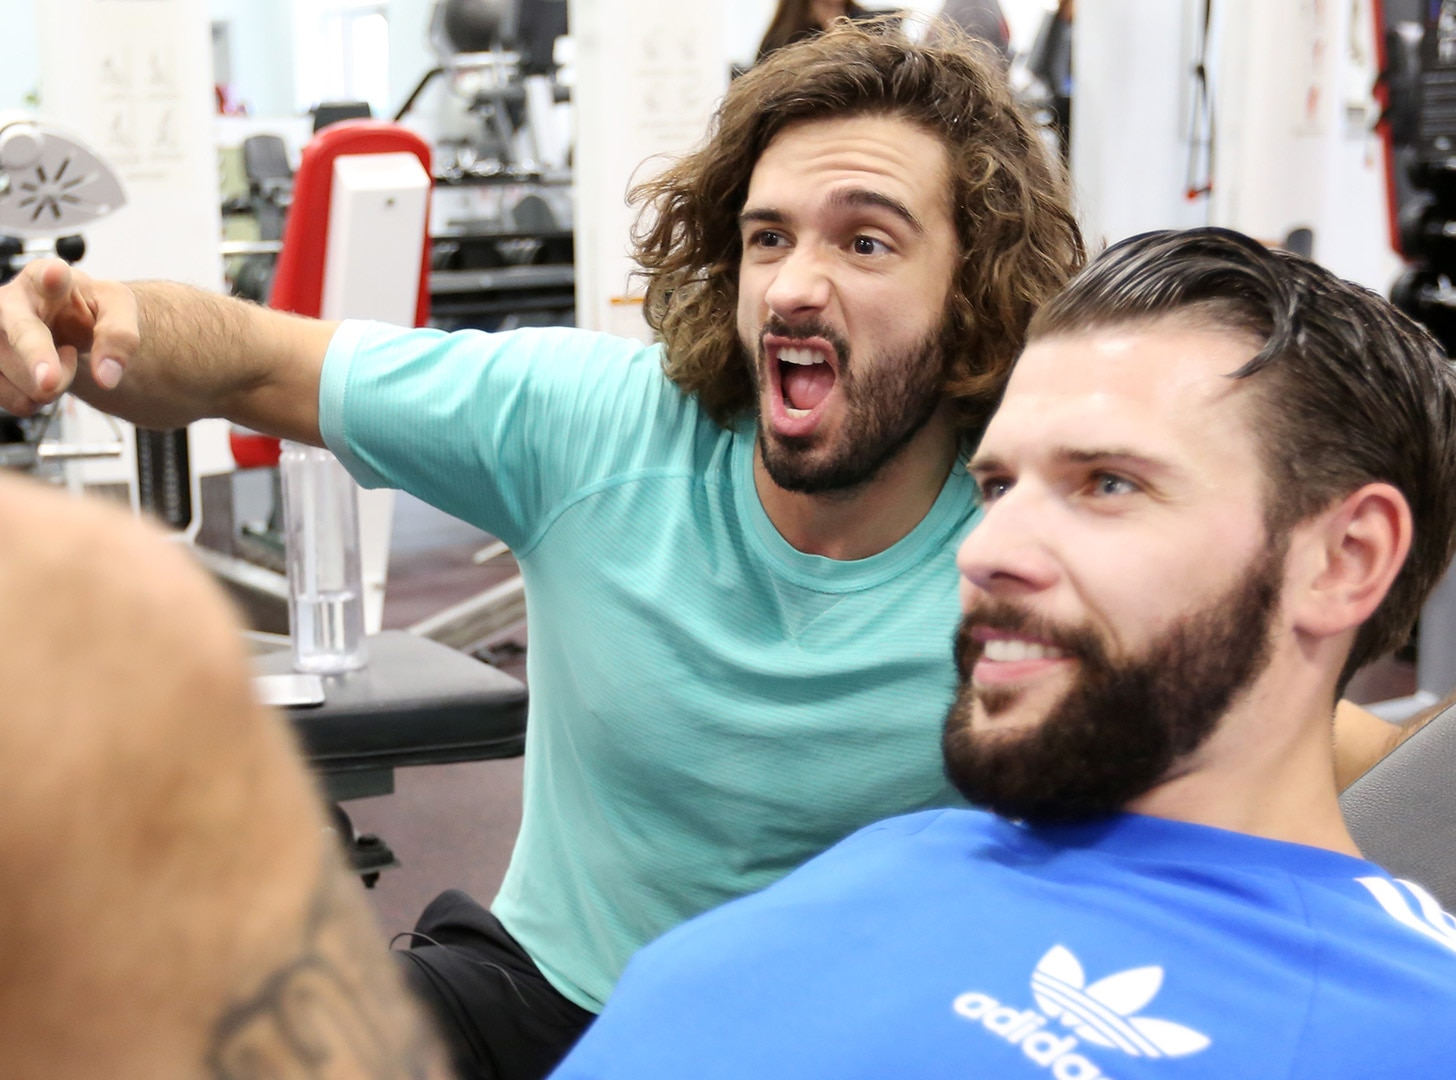 Joe Wicks: Celebrity Body Coach